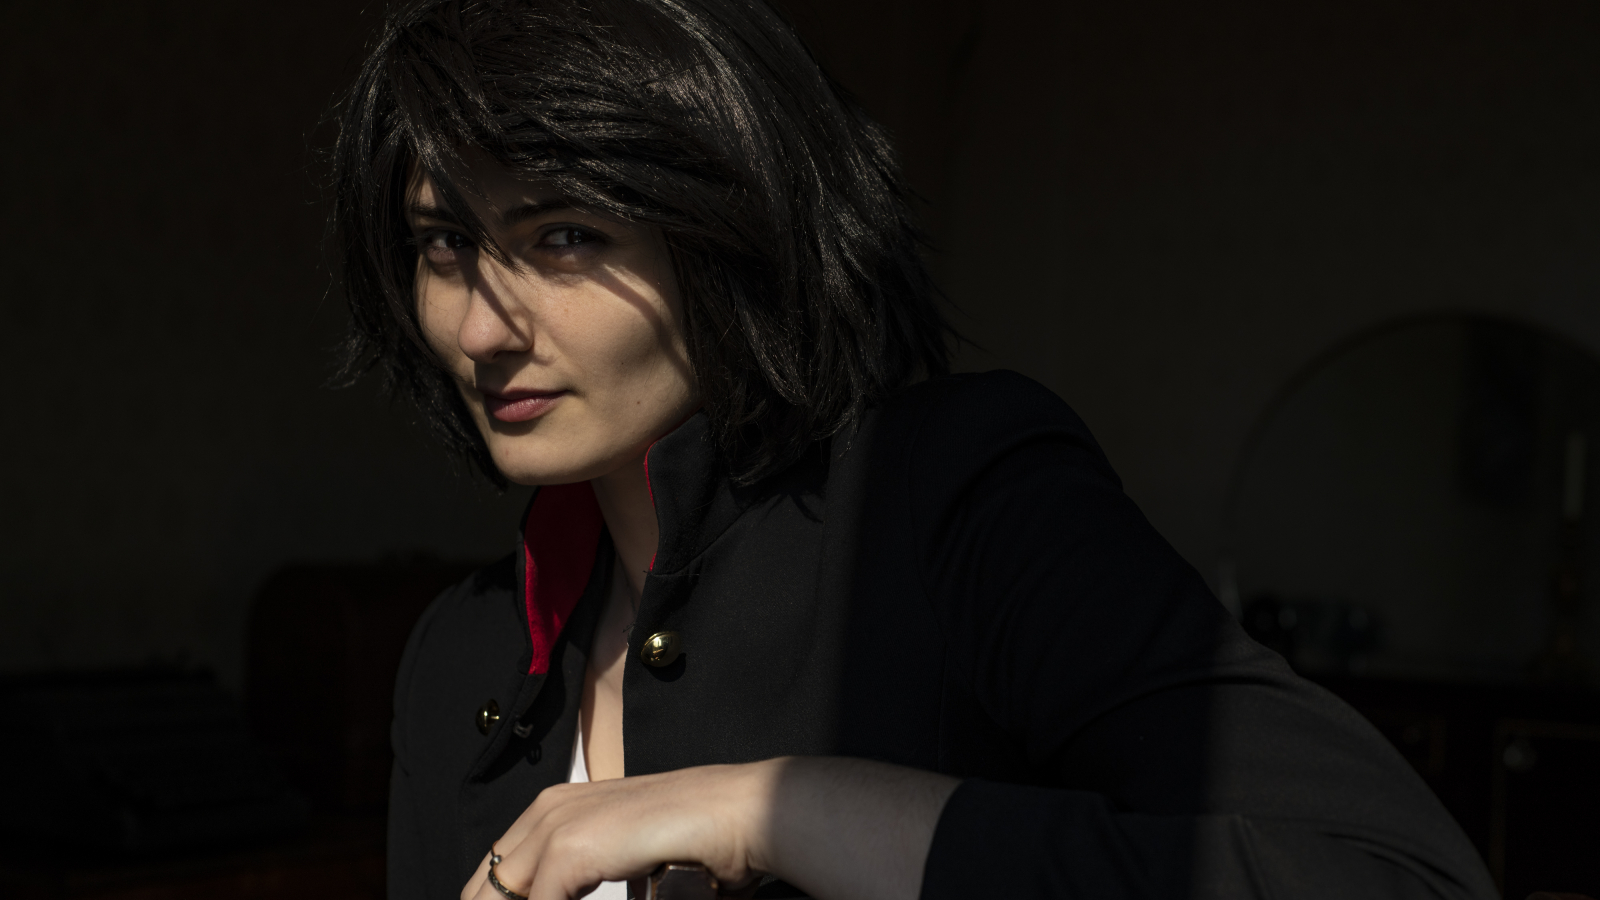 Yana Pogosyan (photo by Nazik Armenakian)